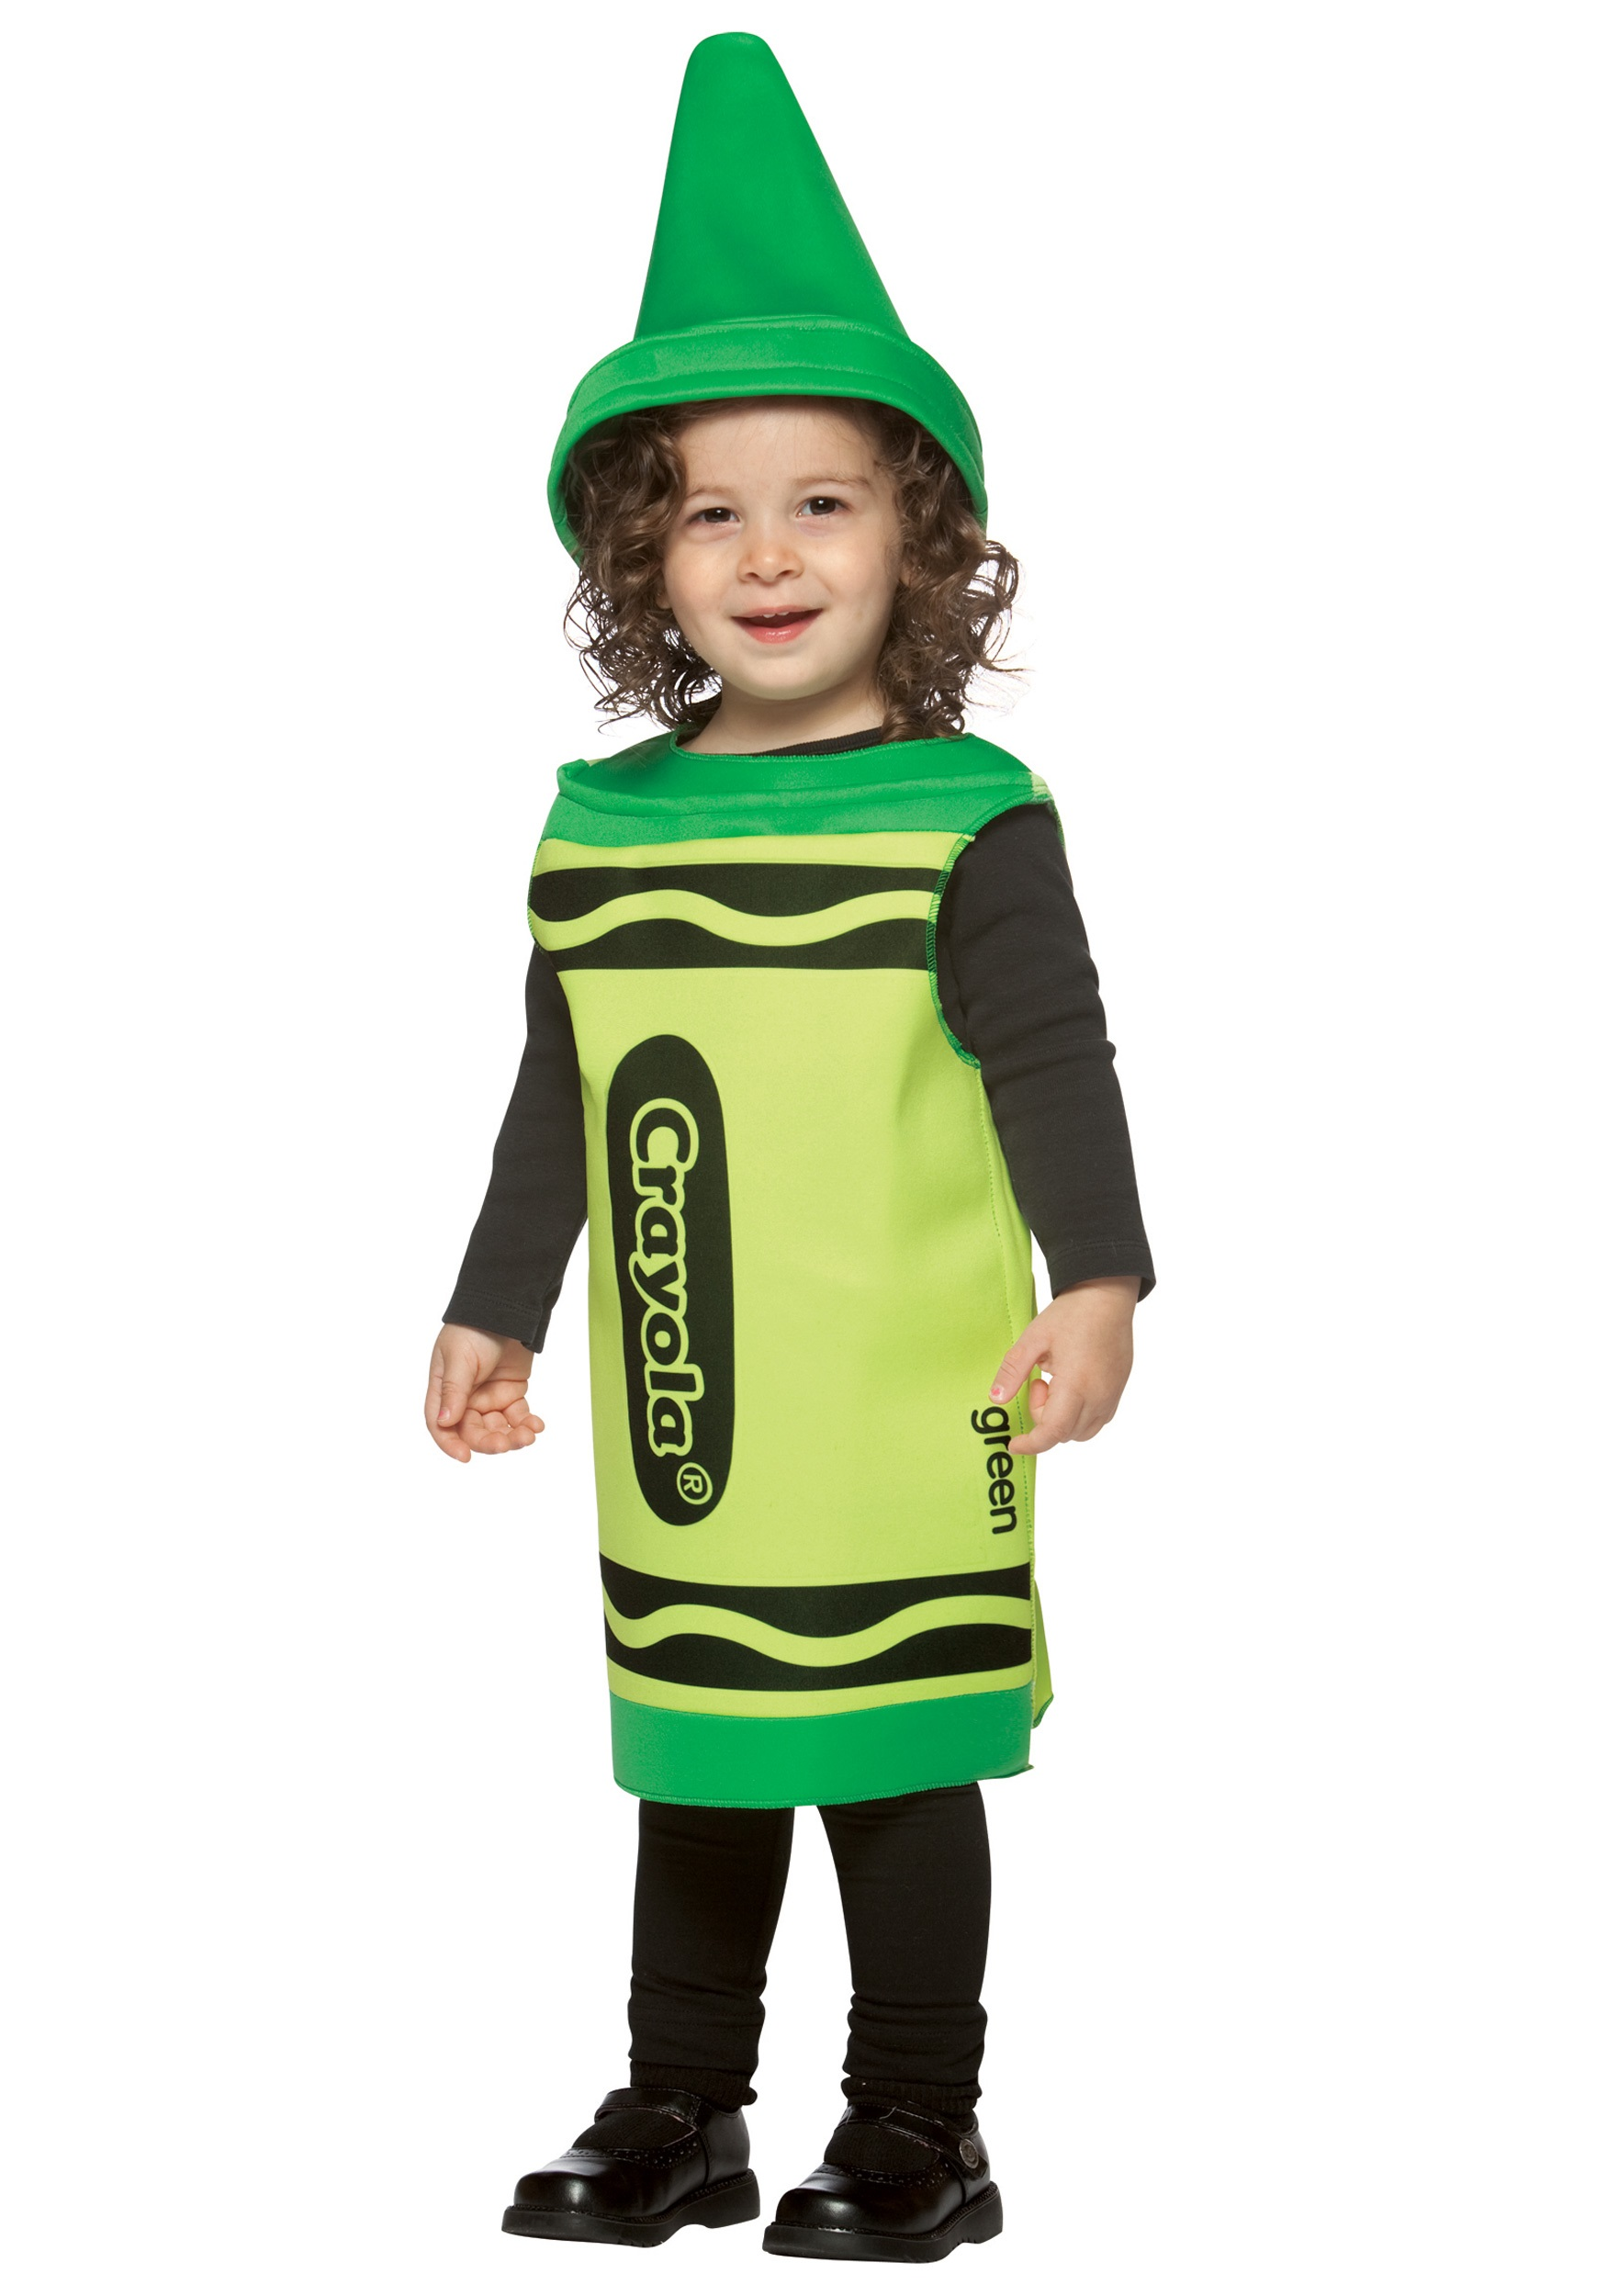 Crayola Green Crayon Costume  sc 1 st  Halloween Costume Ideas : crayola crayon costume adults  - Germanpascual.Com